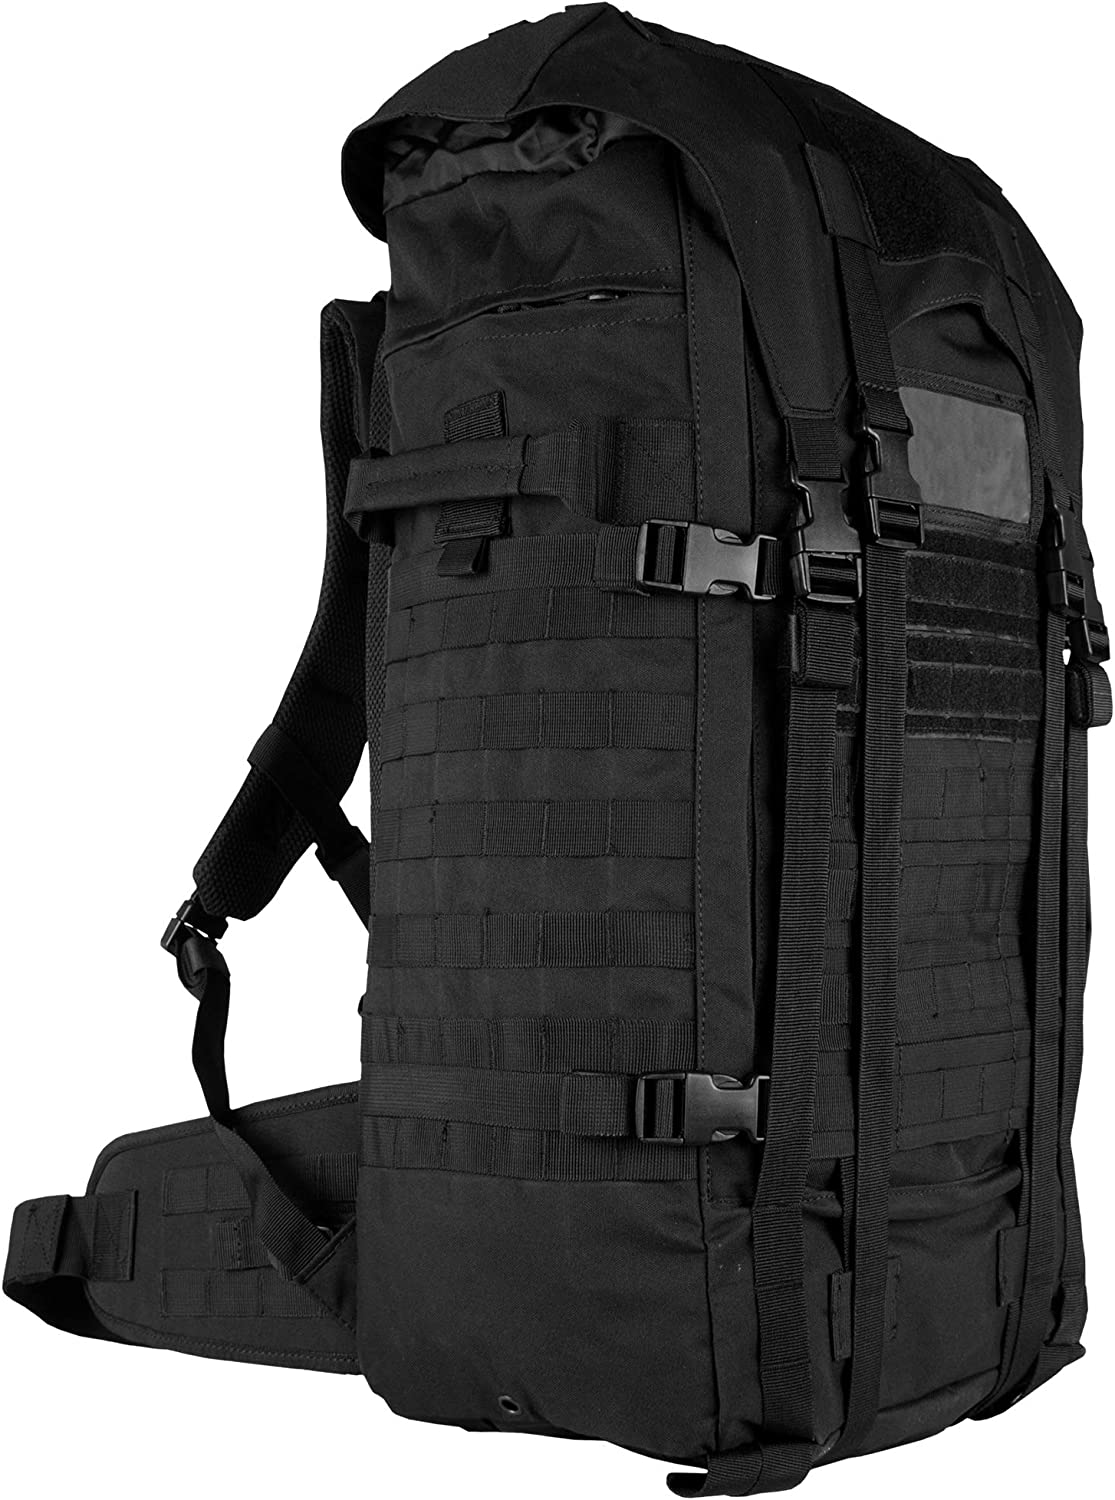 sold out Max 90% OFF Fox Outdoor Products Advanced Black Mountaineering Pack